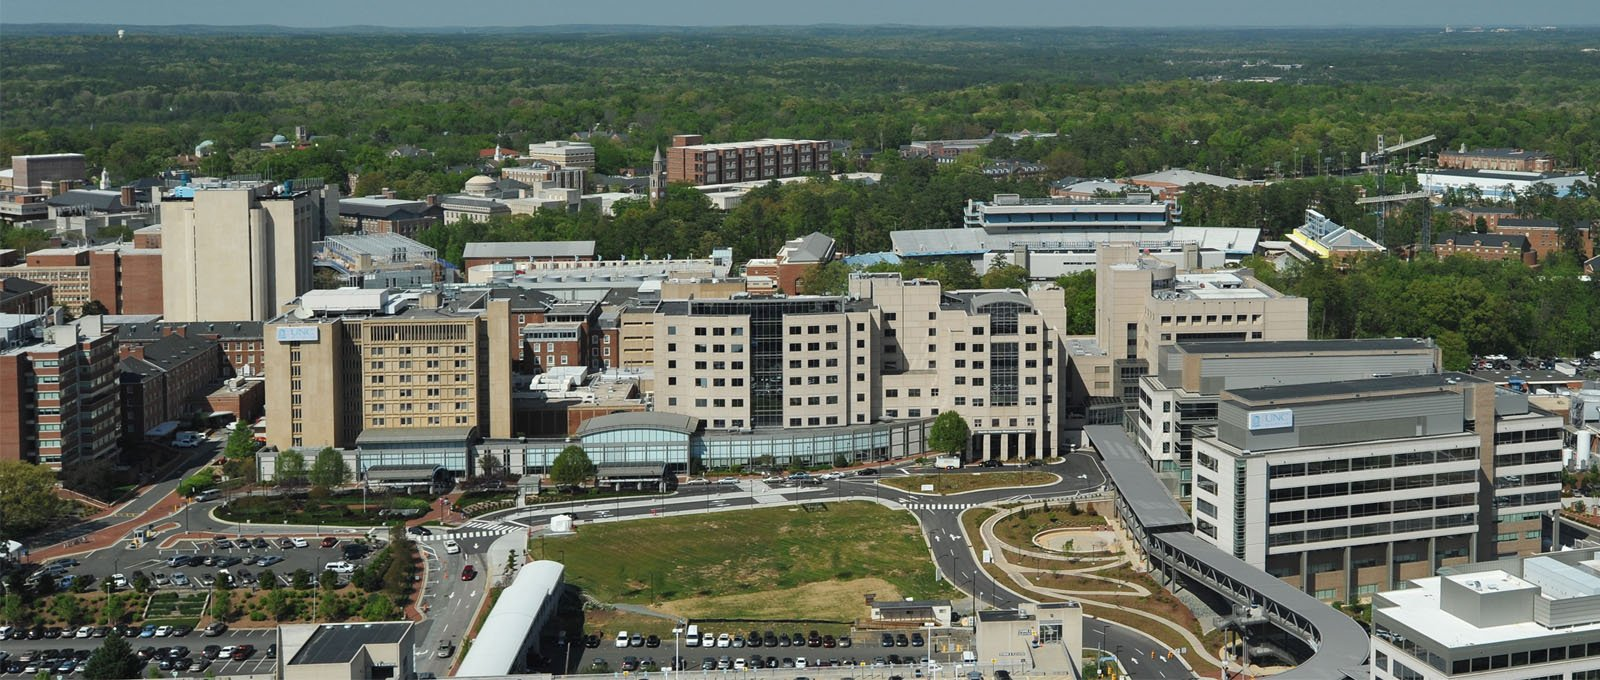 Aerial view of UNC Hospitals